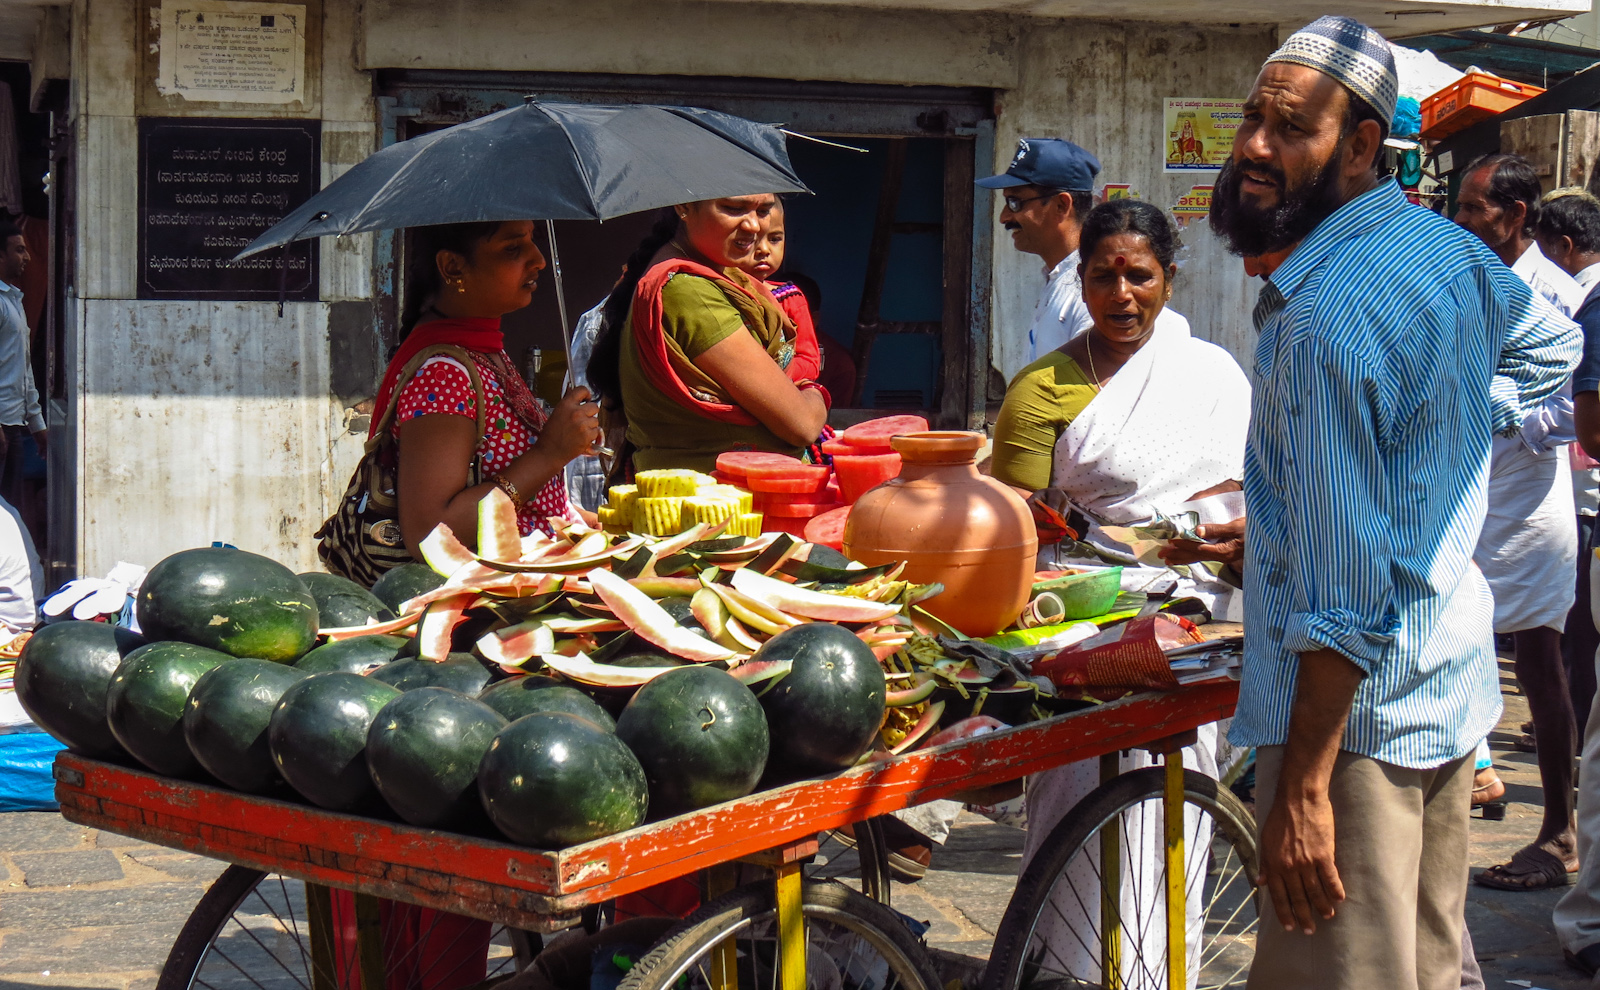 melons-for-sale-mysore-india